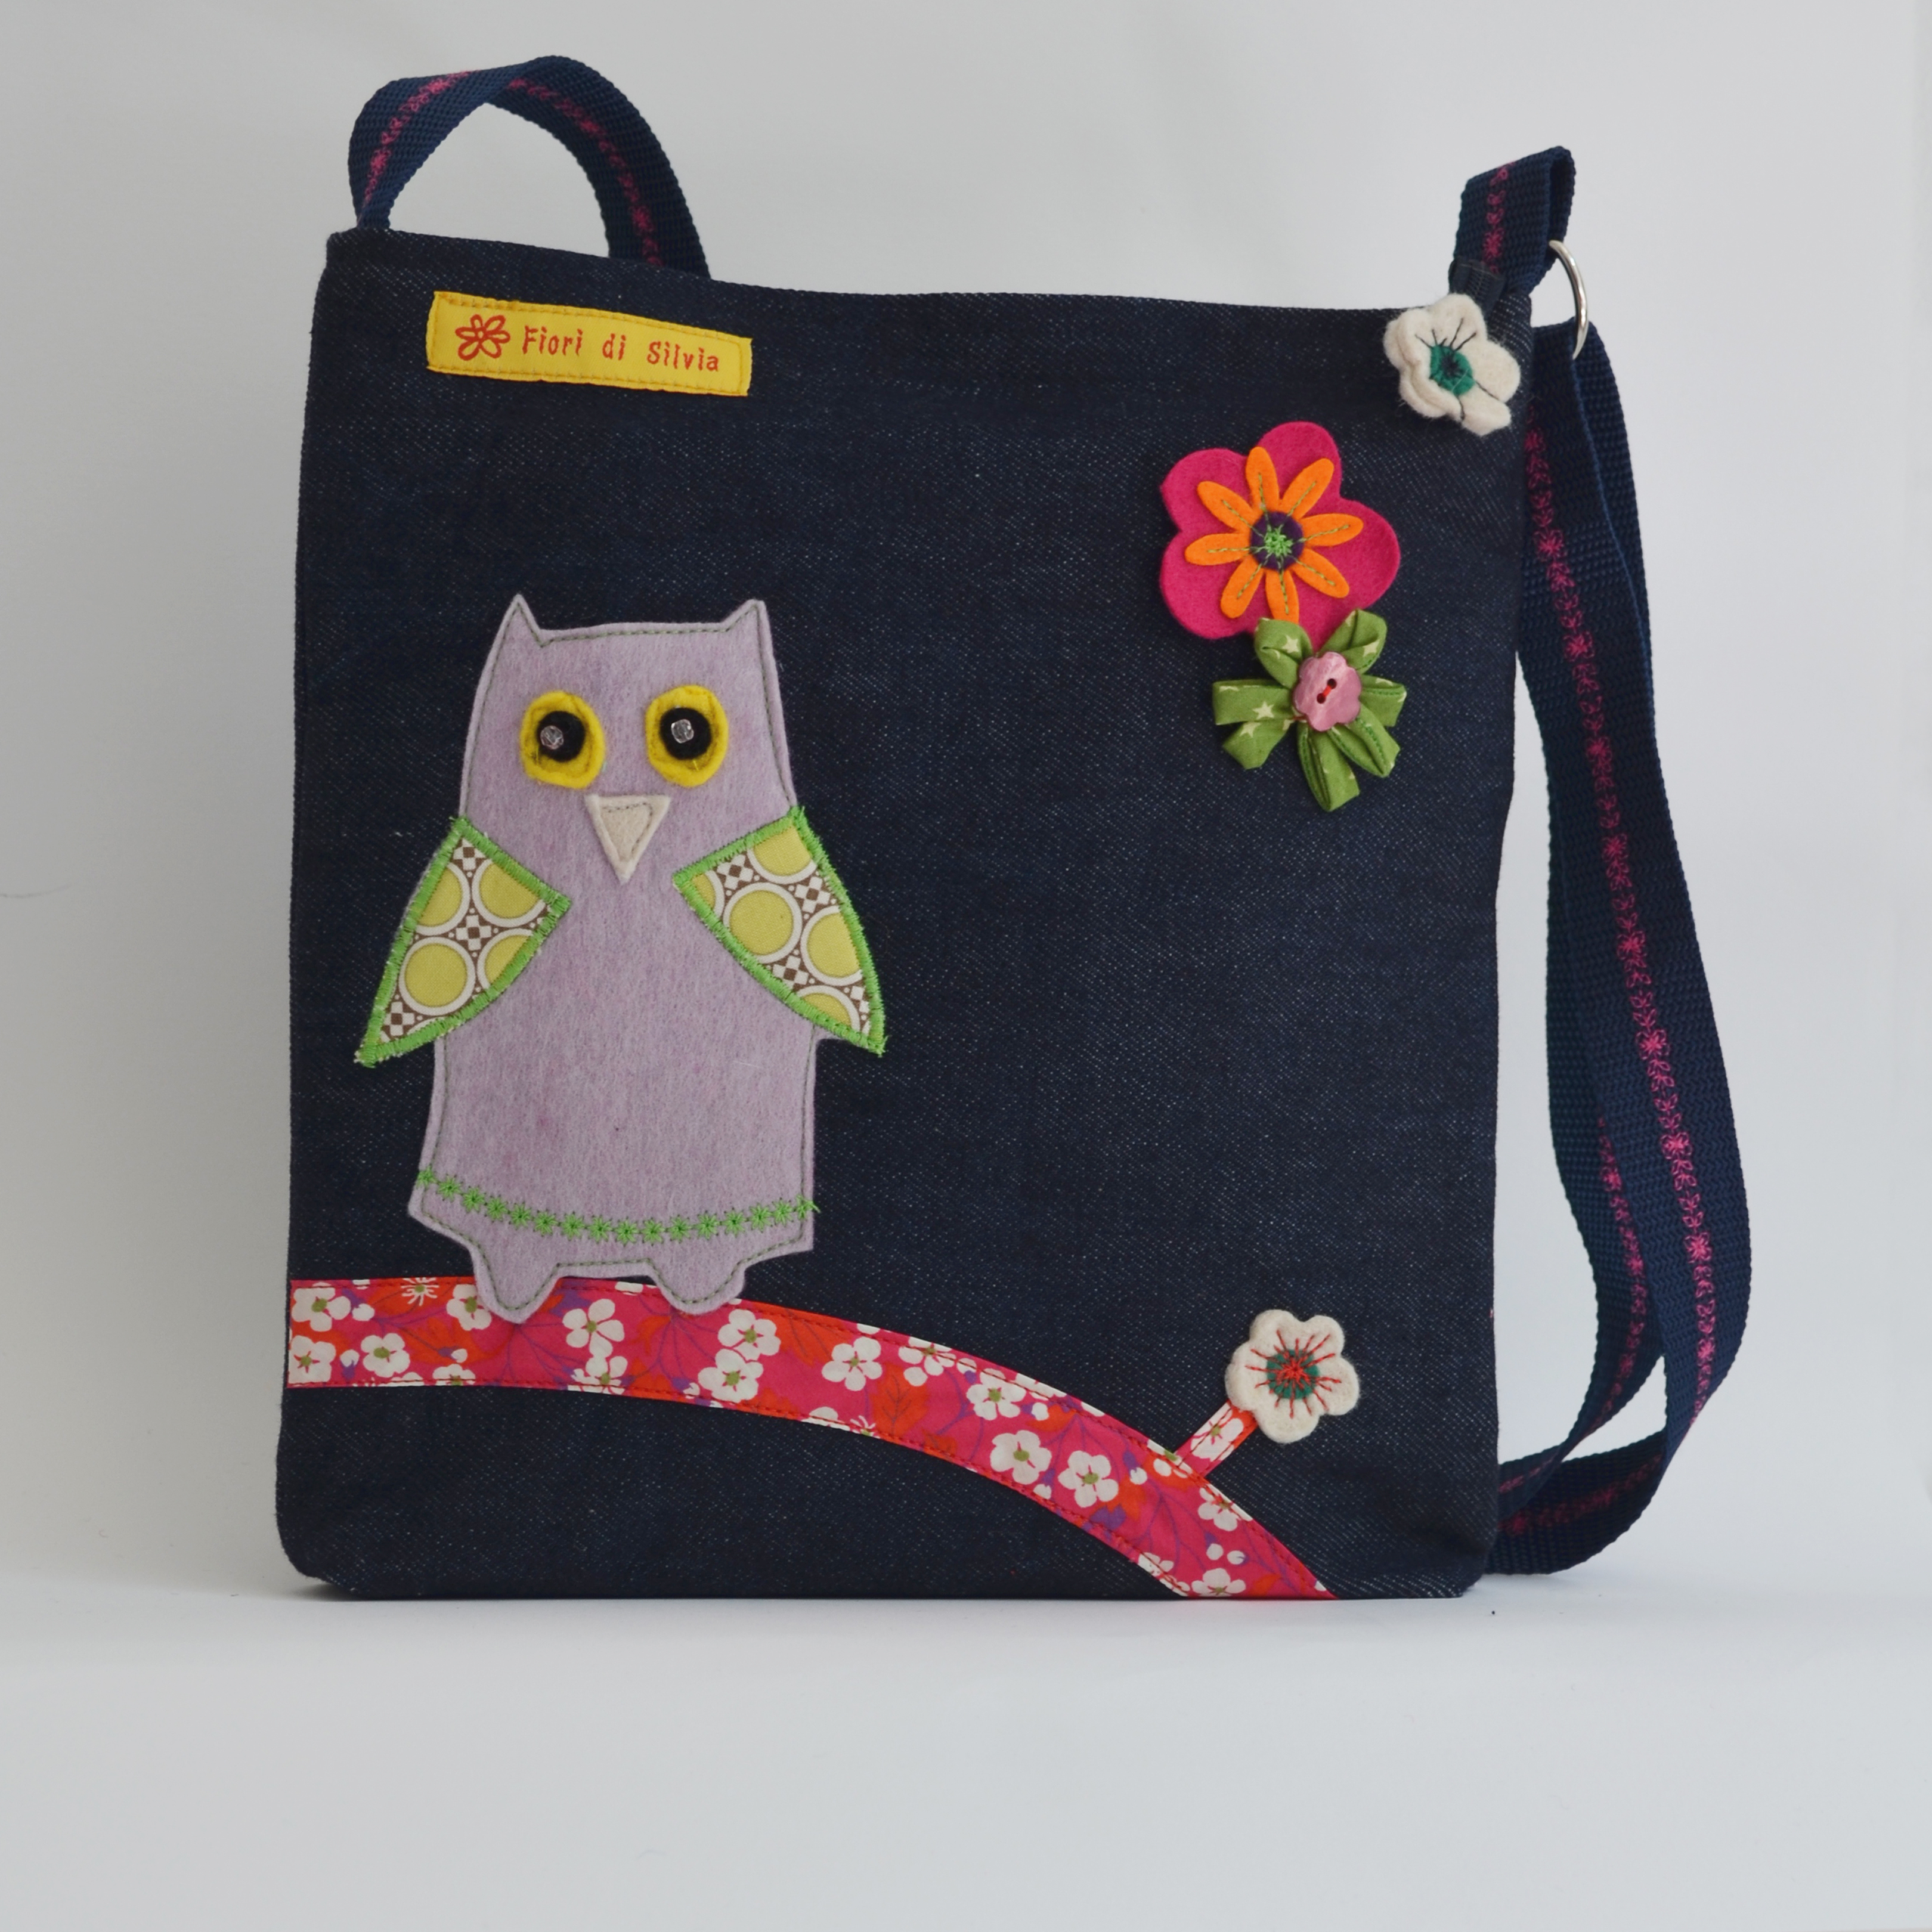 Rosa shoulder bag